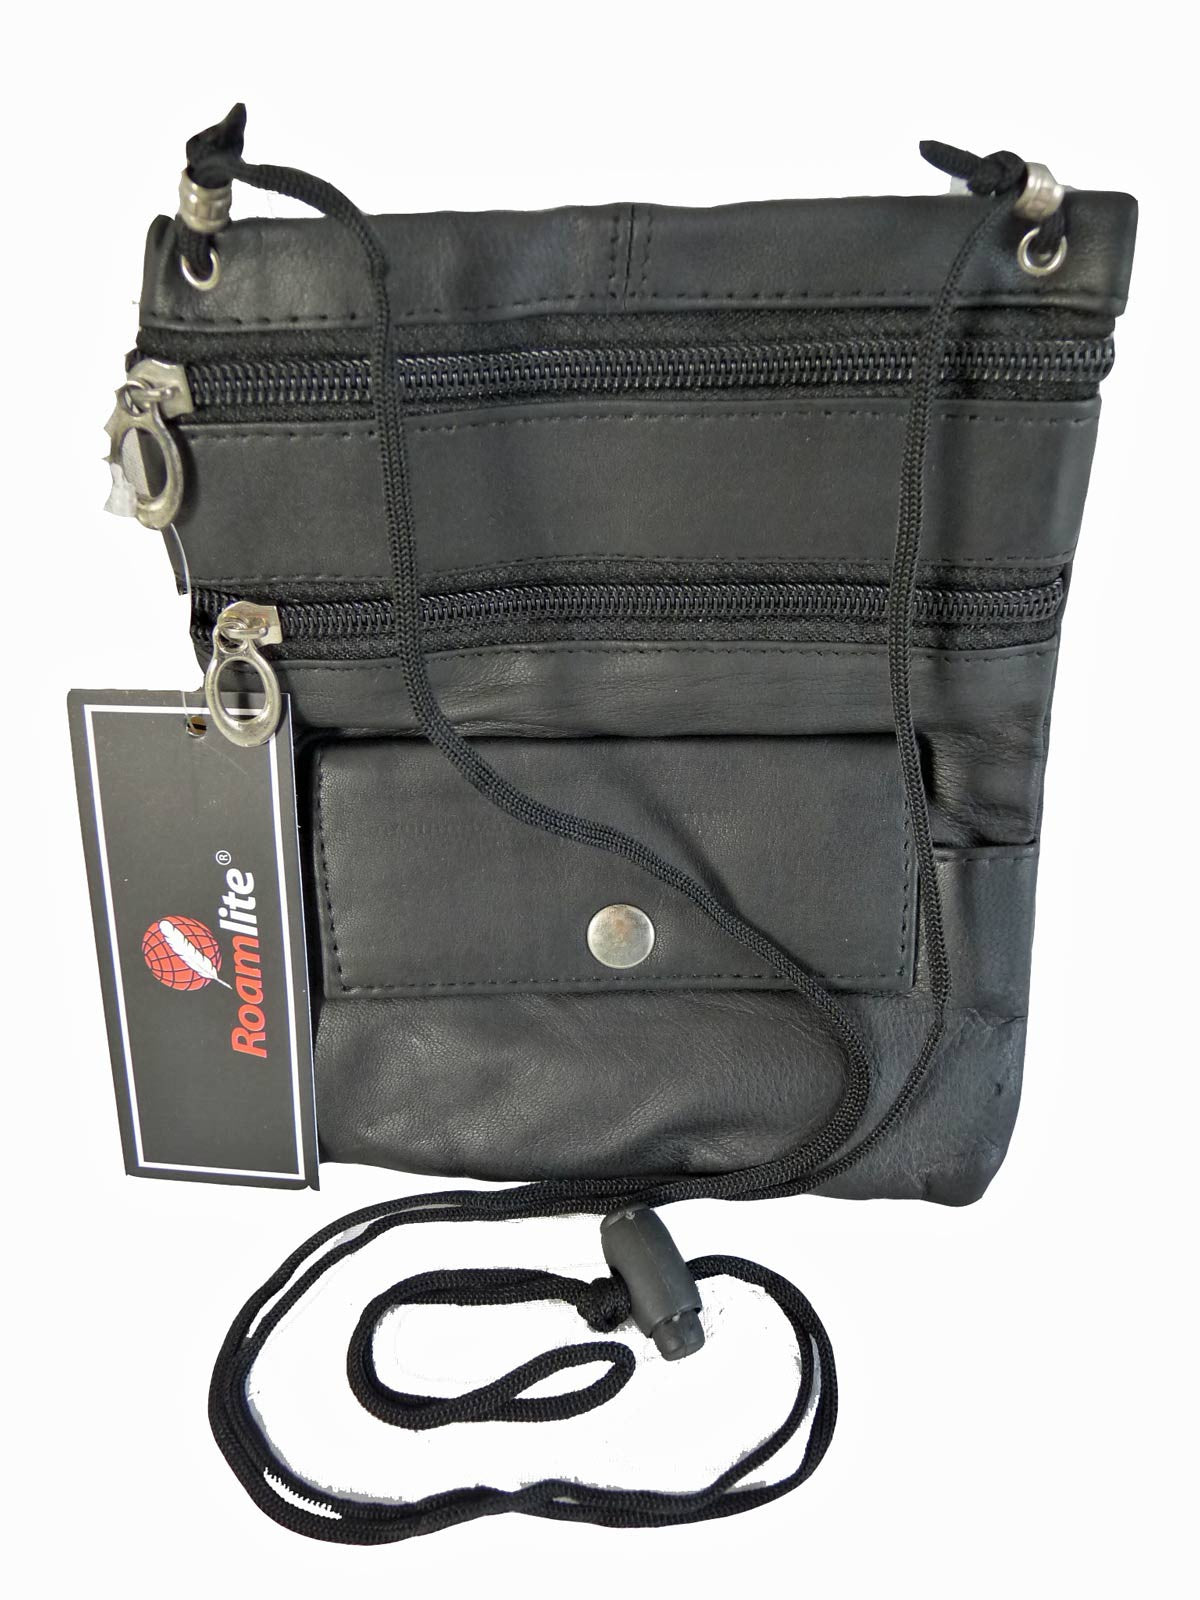 Leather Neck Pouch RL130 Black Front View 2